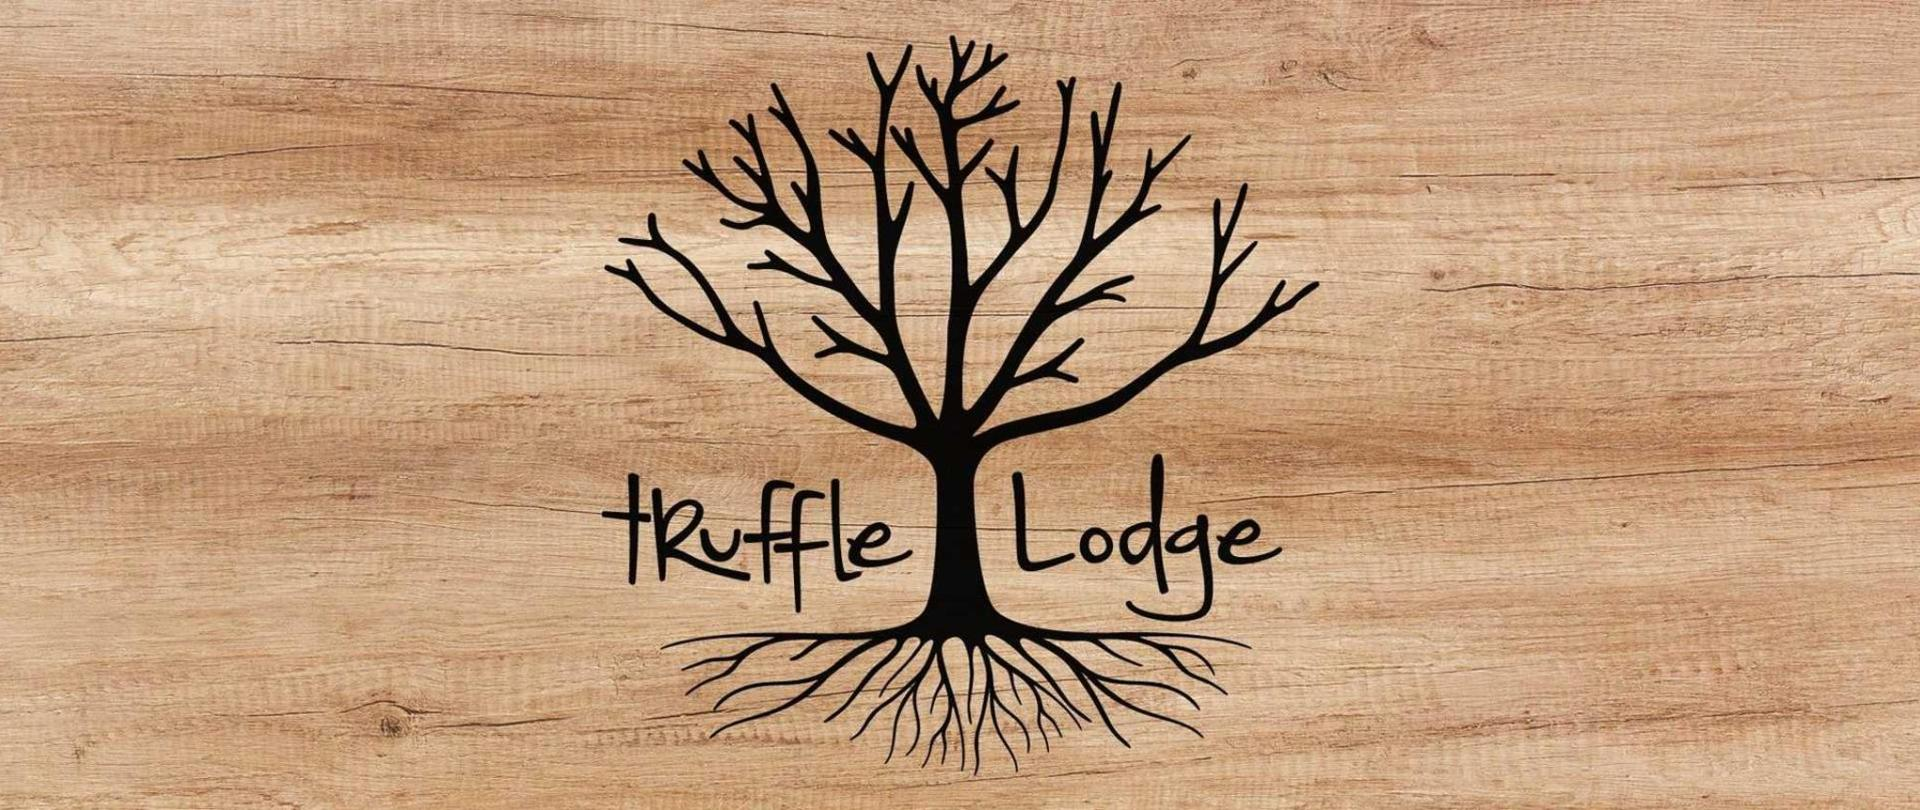 Truffle Lodge